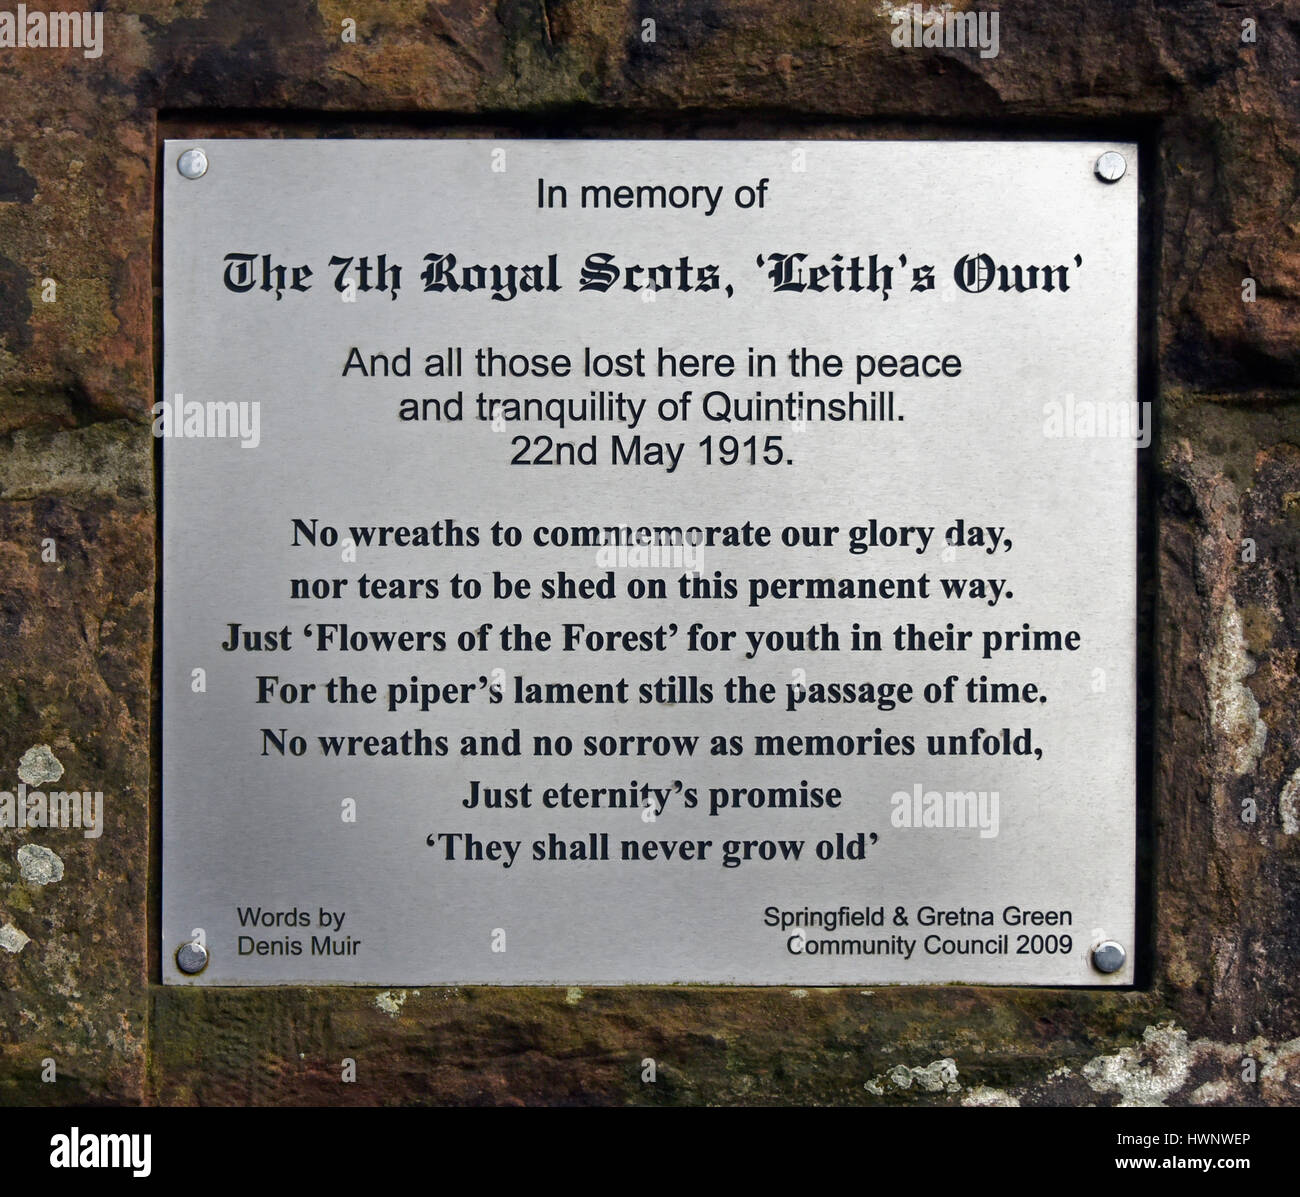 memorial-plaque-at-the-site-of-the-quintinshill-rail-disaster-22nd-HWNWEP.jpg